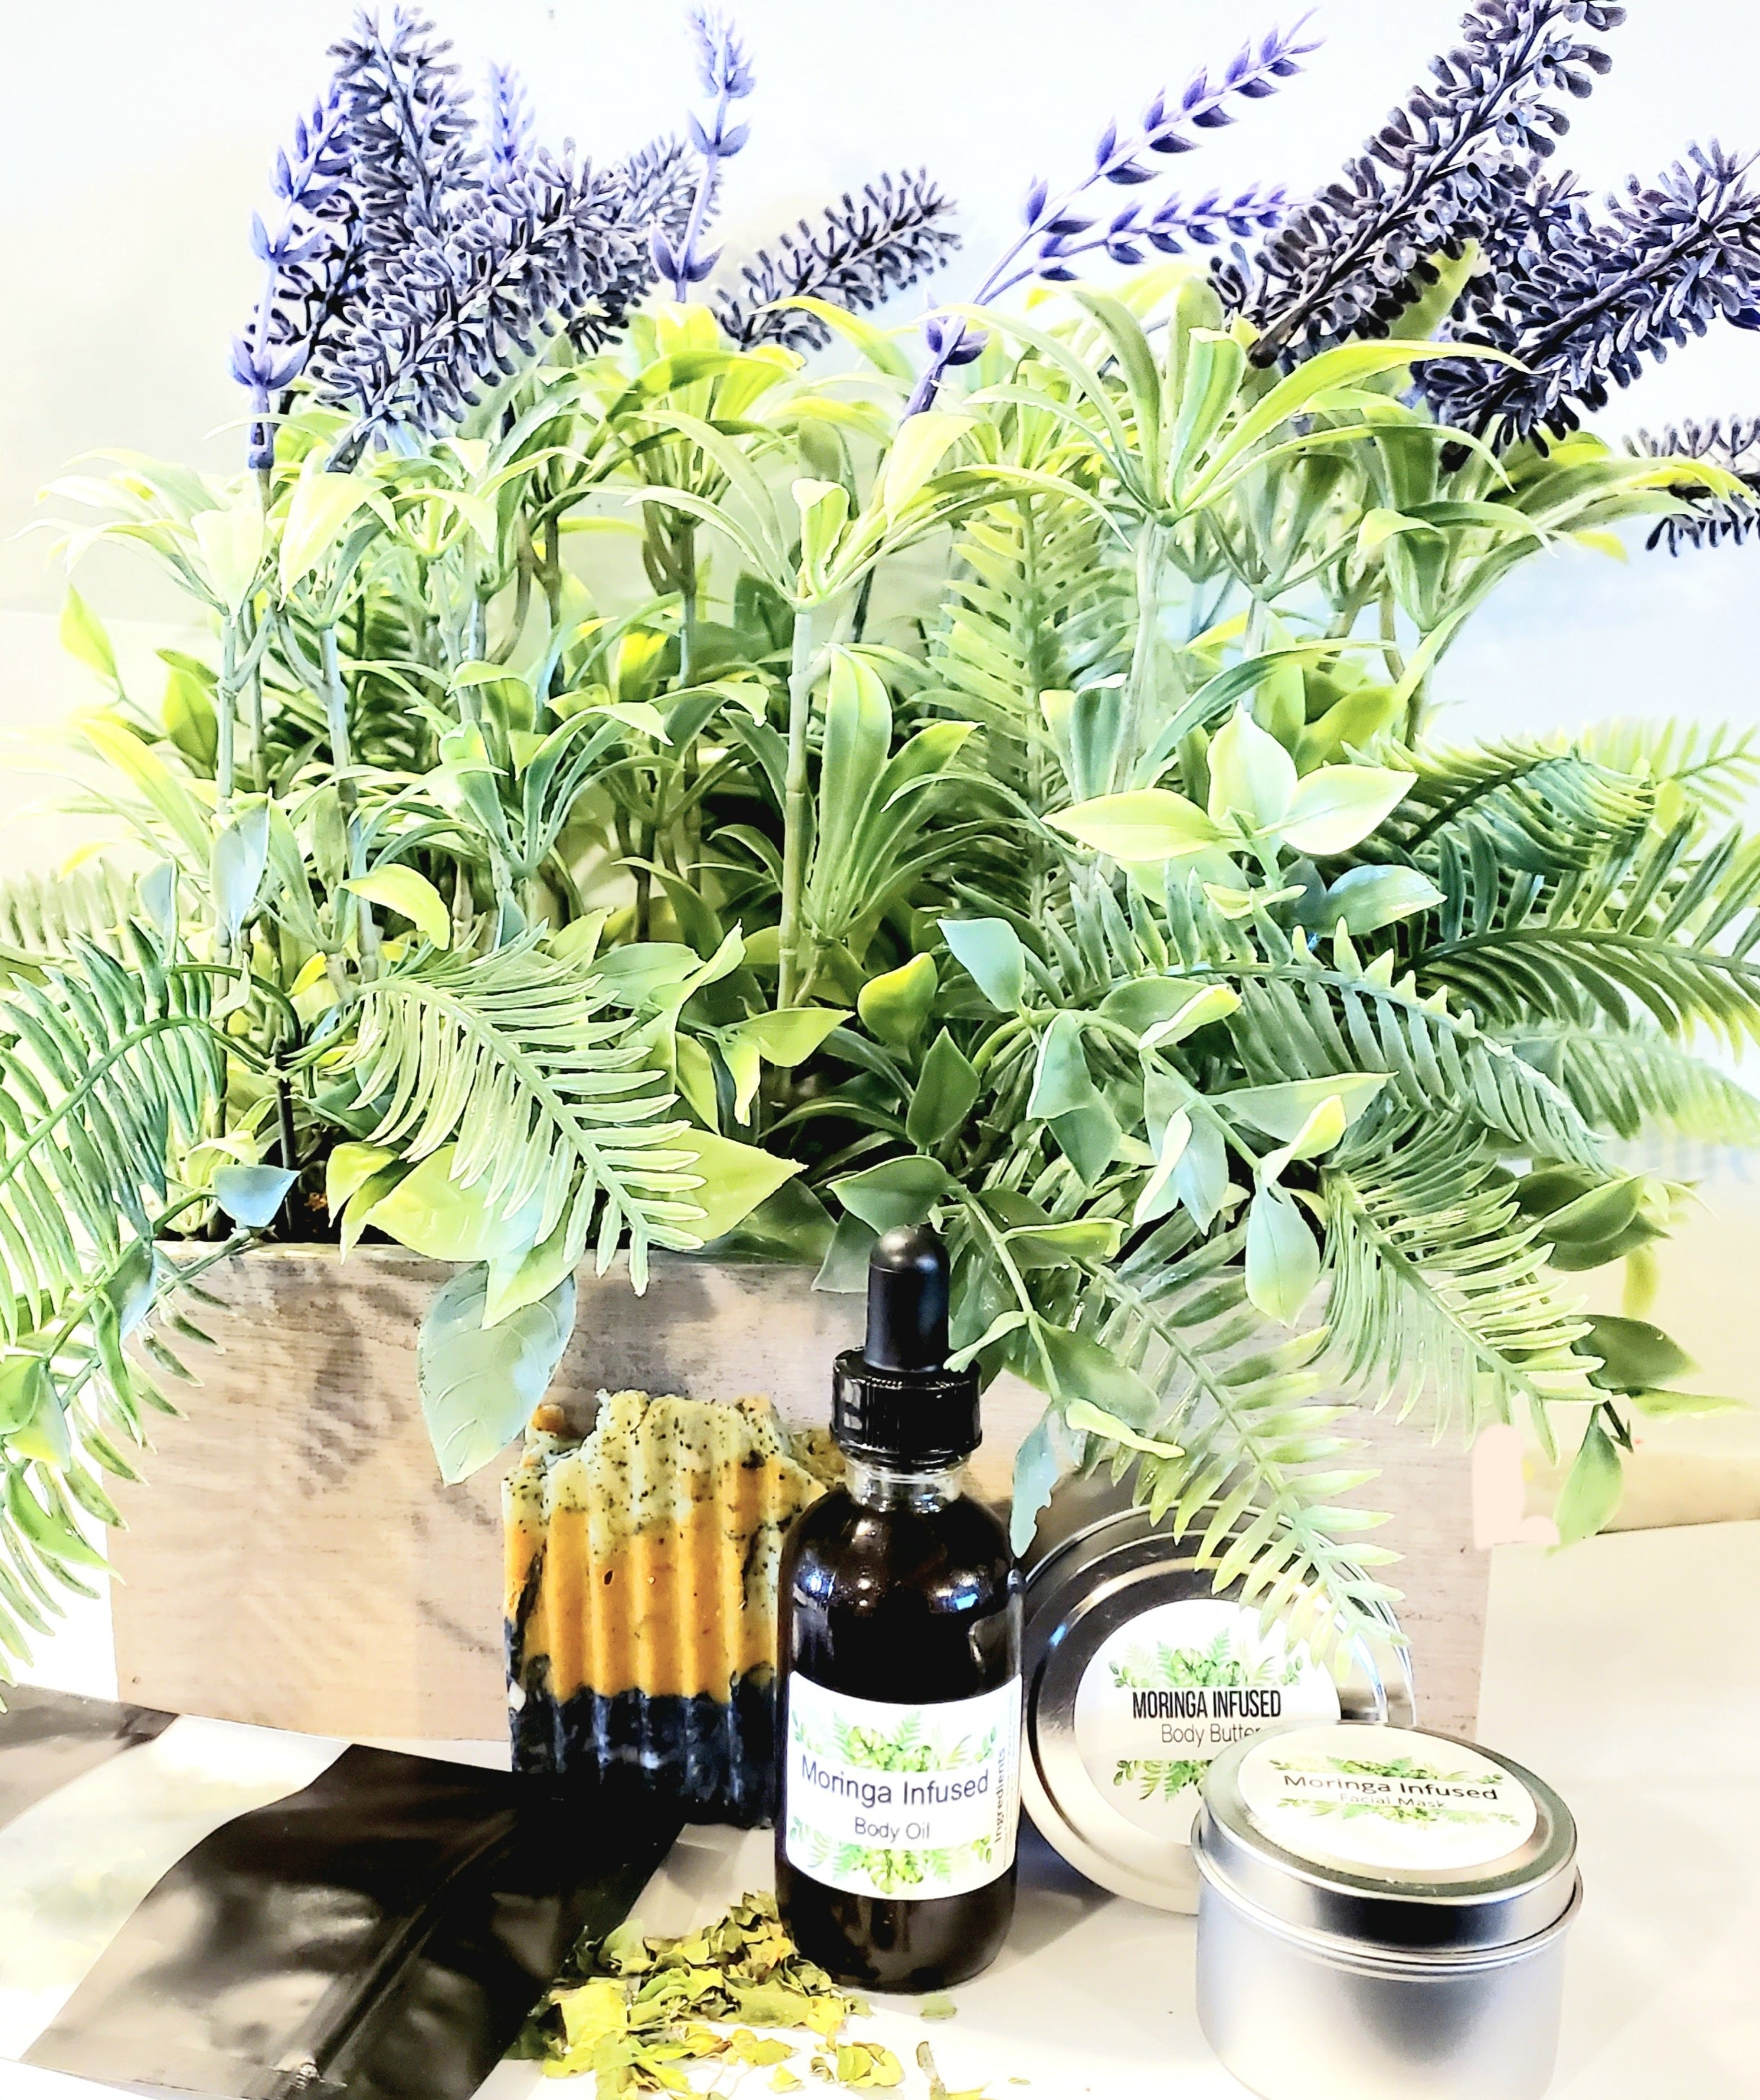 Moringa Infused Gift Basket Set